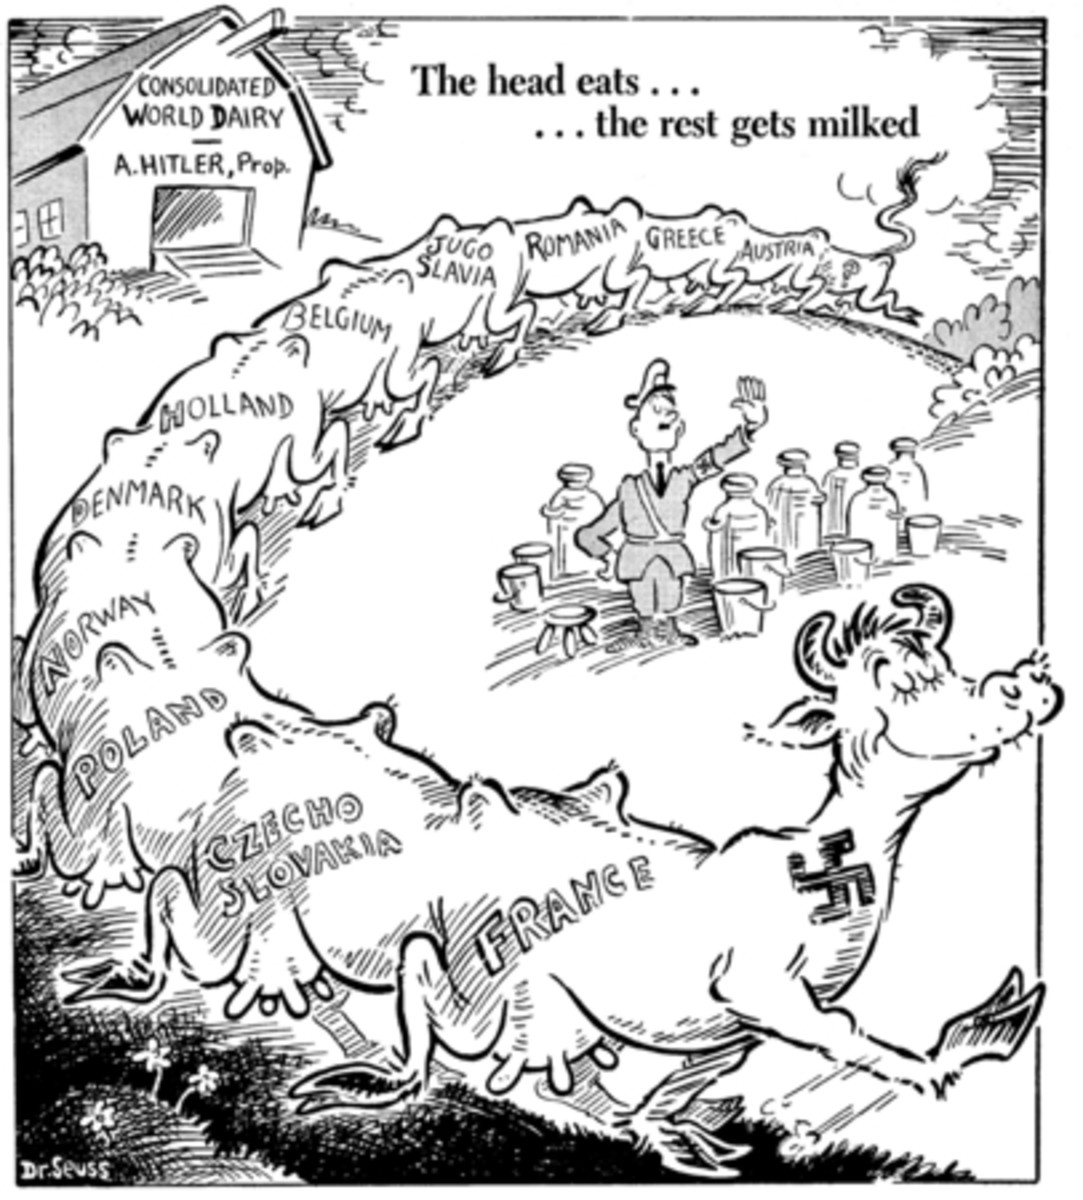 The head eats... the rest gets milked, published by PM Magazine on May 19, 1941, Dr. Seuss Collection, MSS 230. Special Collections & Archives, UC San Diego Library